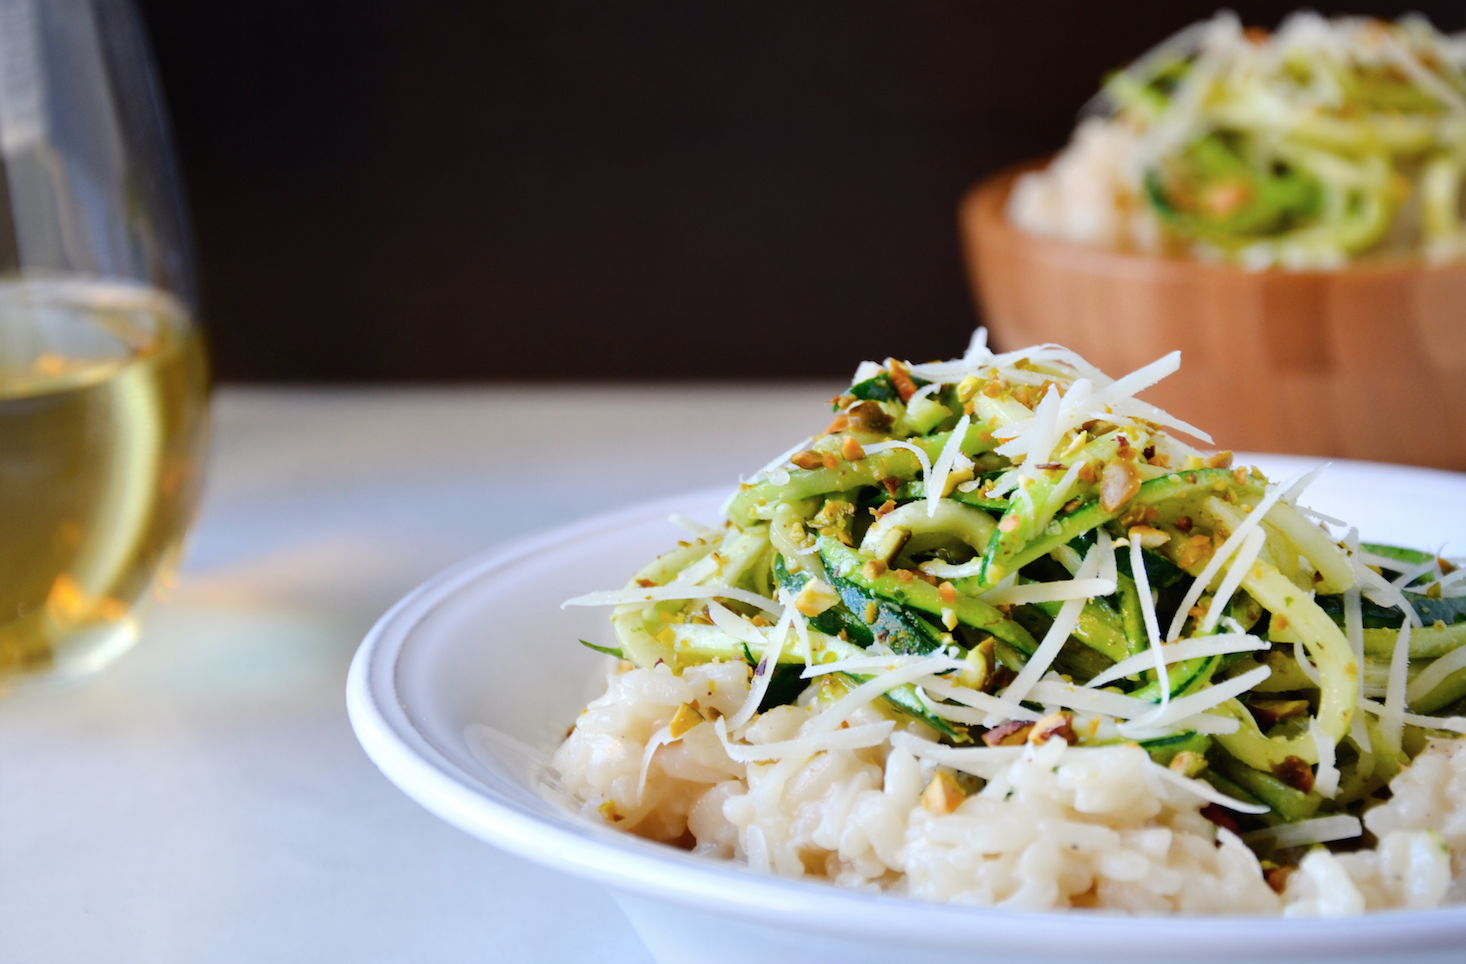 Parmesan Risotto with Zucchini Noodles and Pistachio Pesto